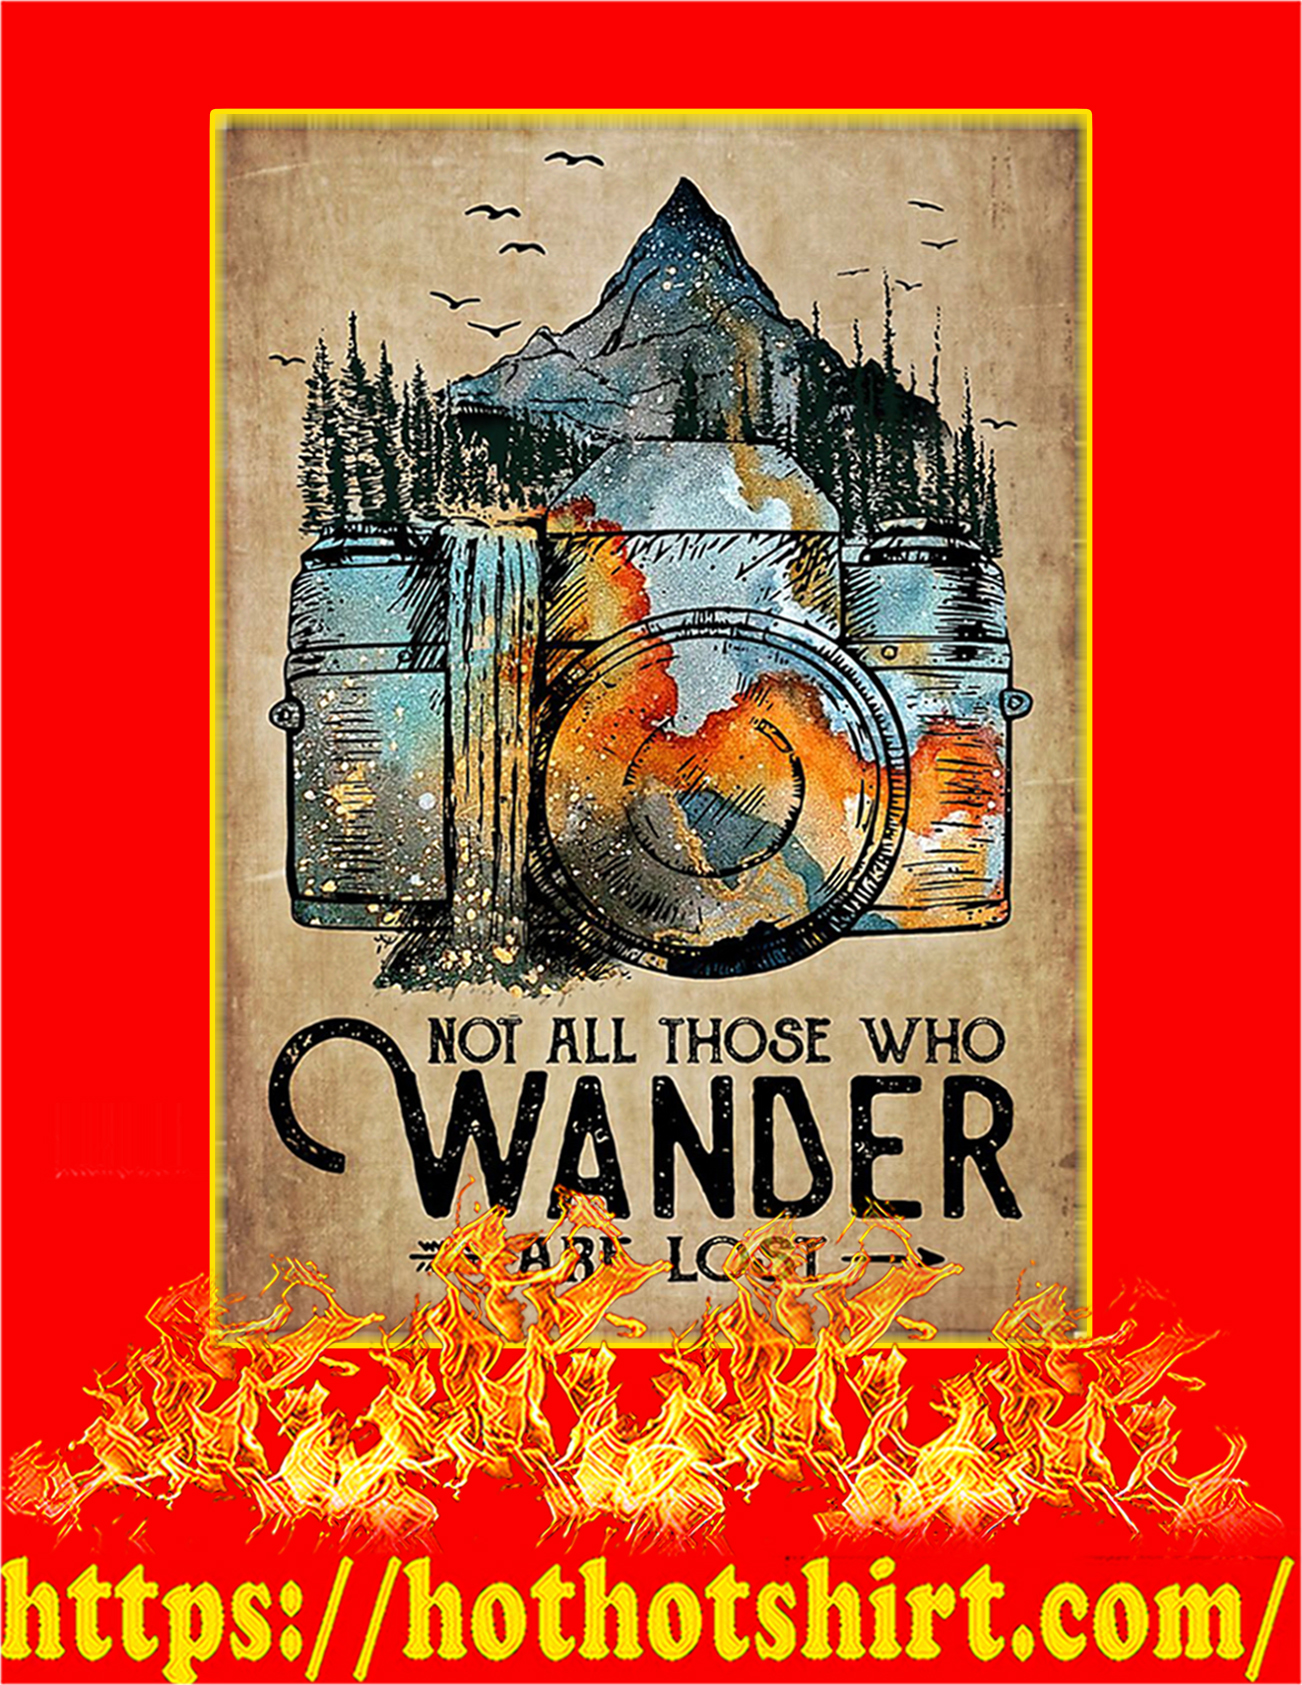 Photographer not all those who wander are lost poster - A2